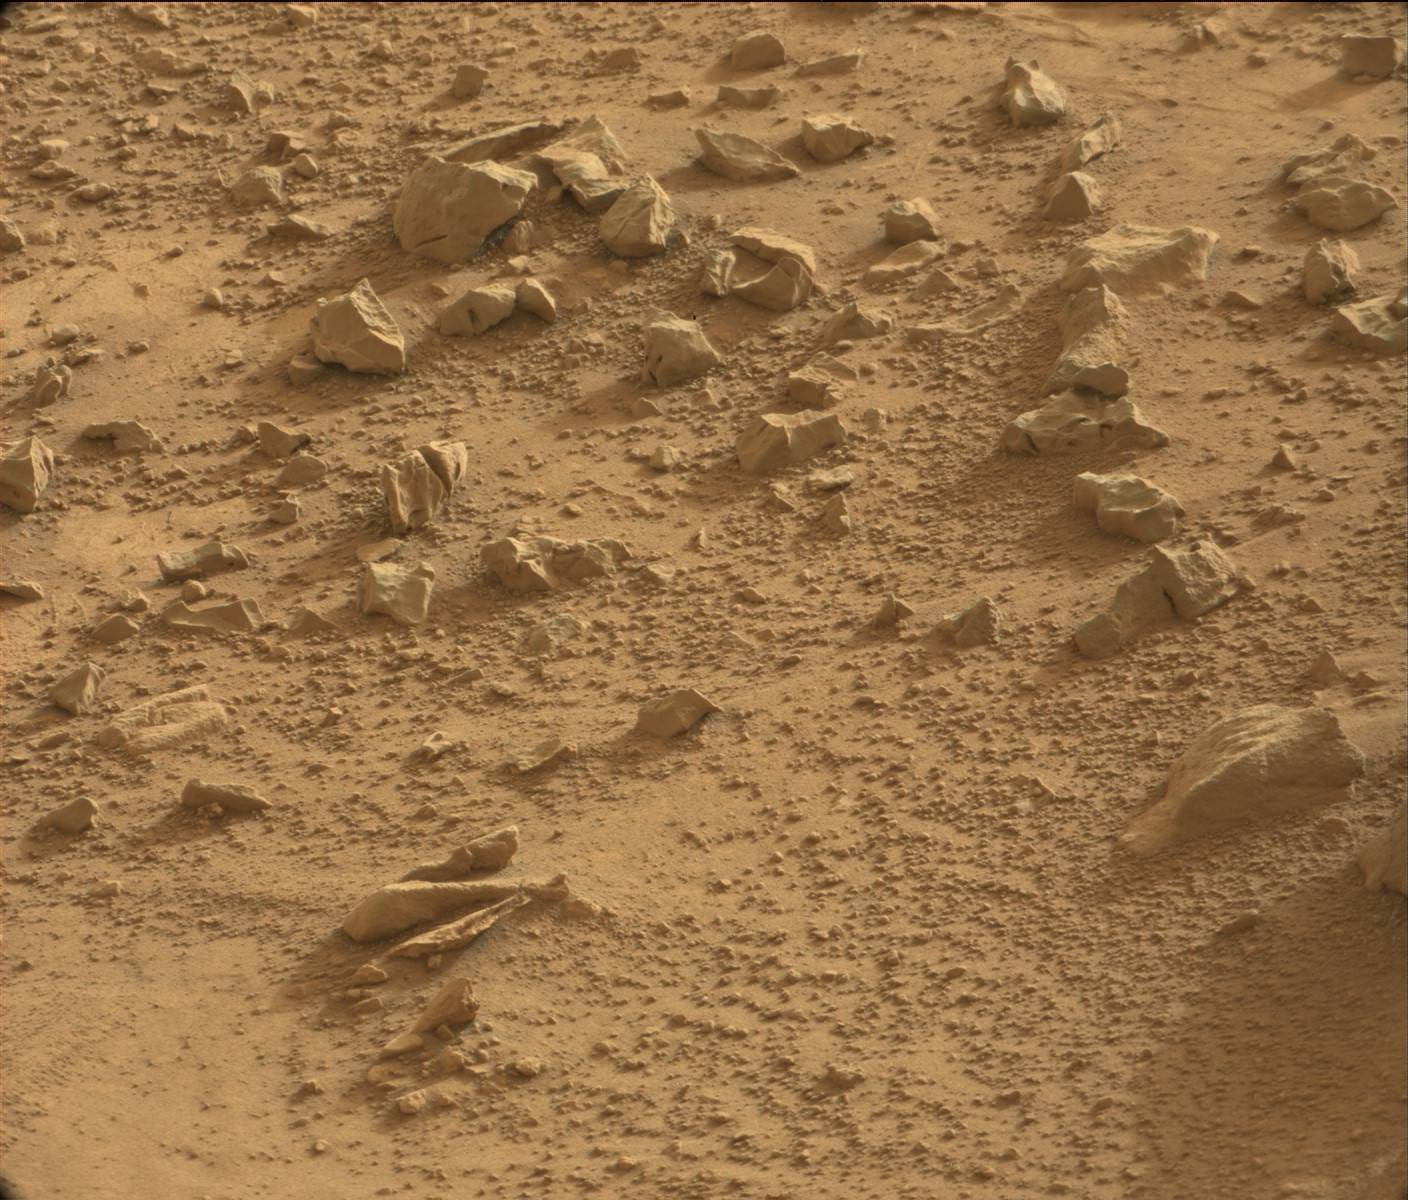 Mars fossils tools carved stone